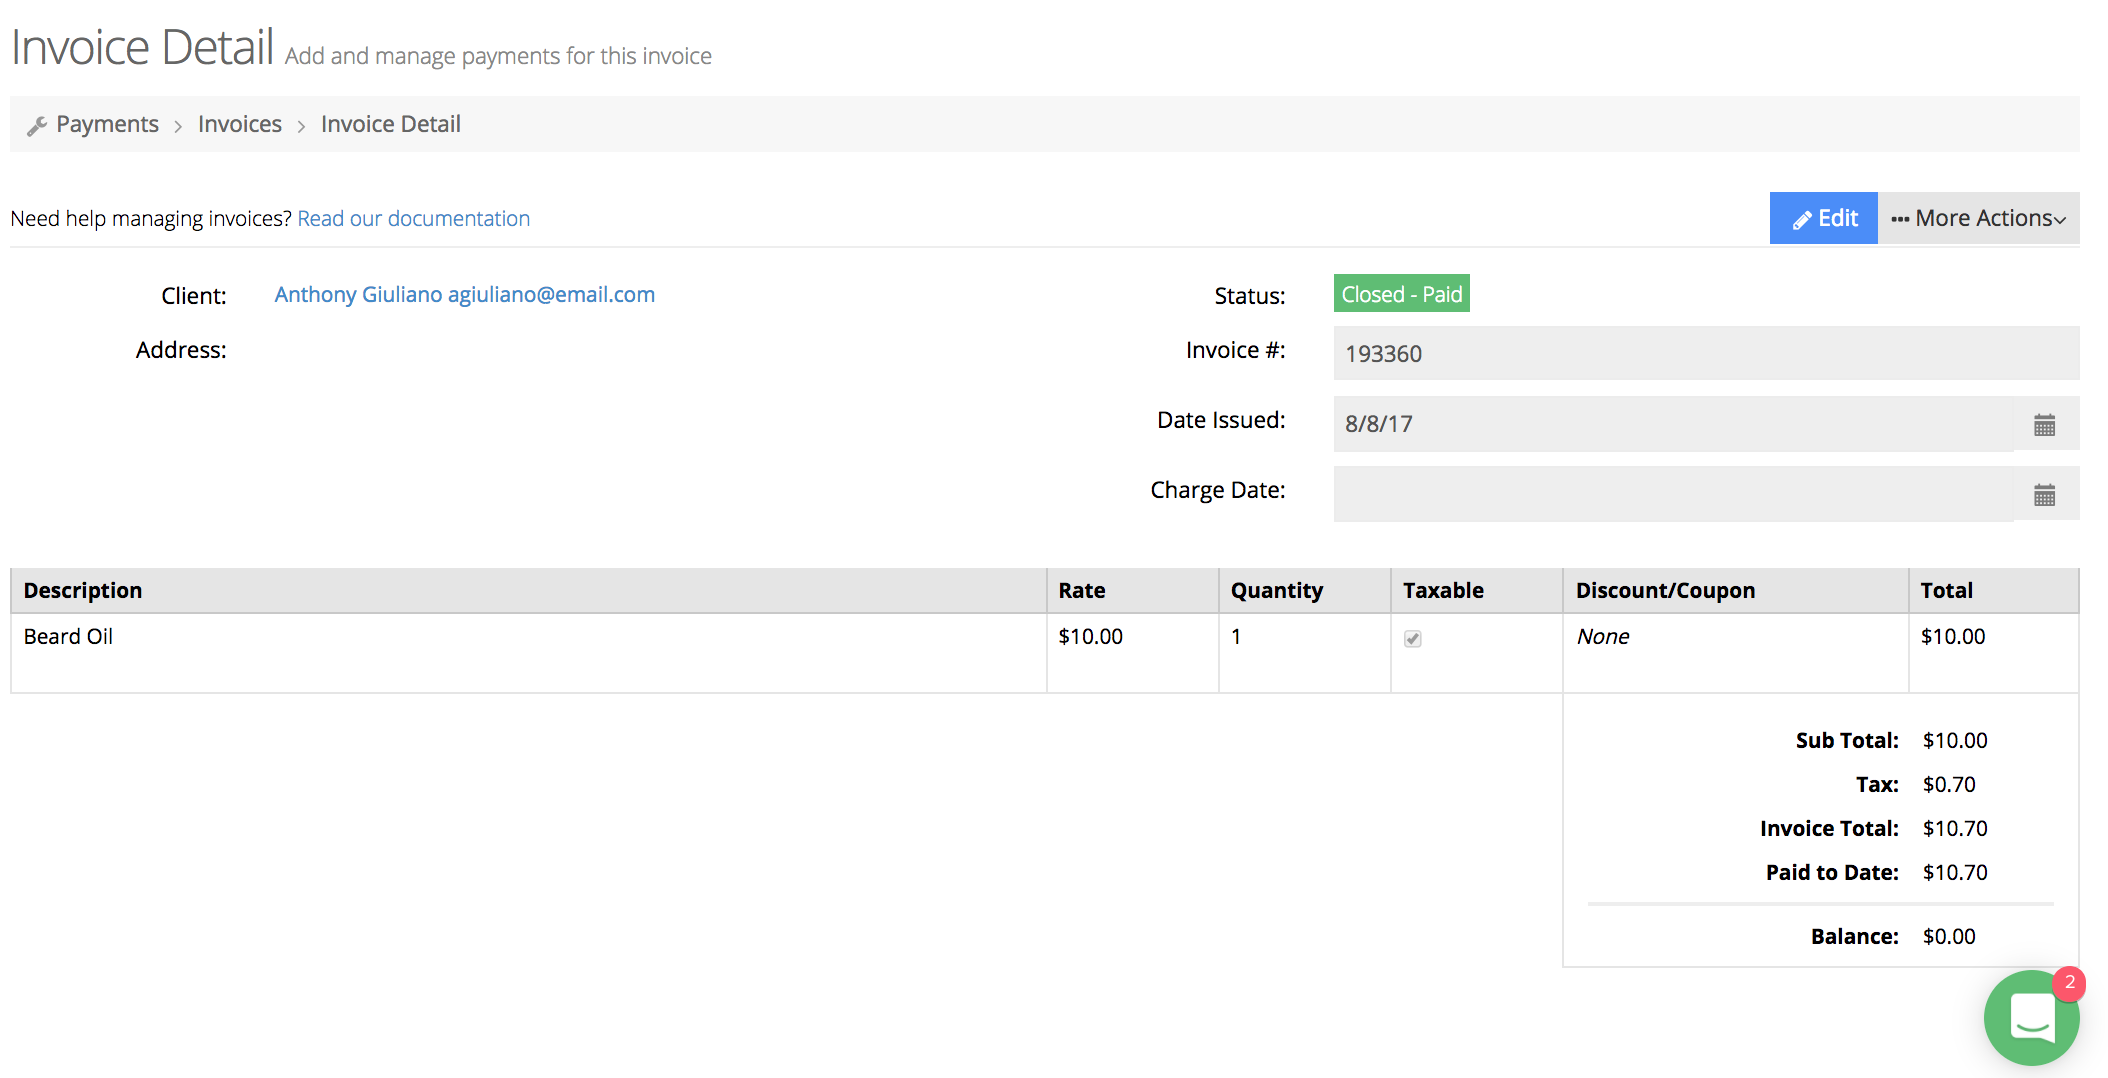 Client invoice is complete